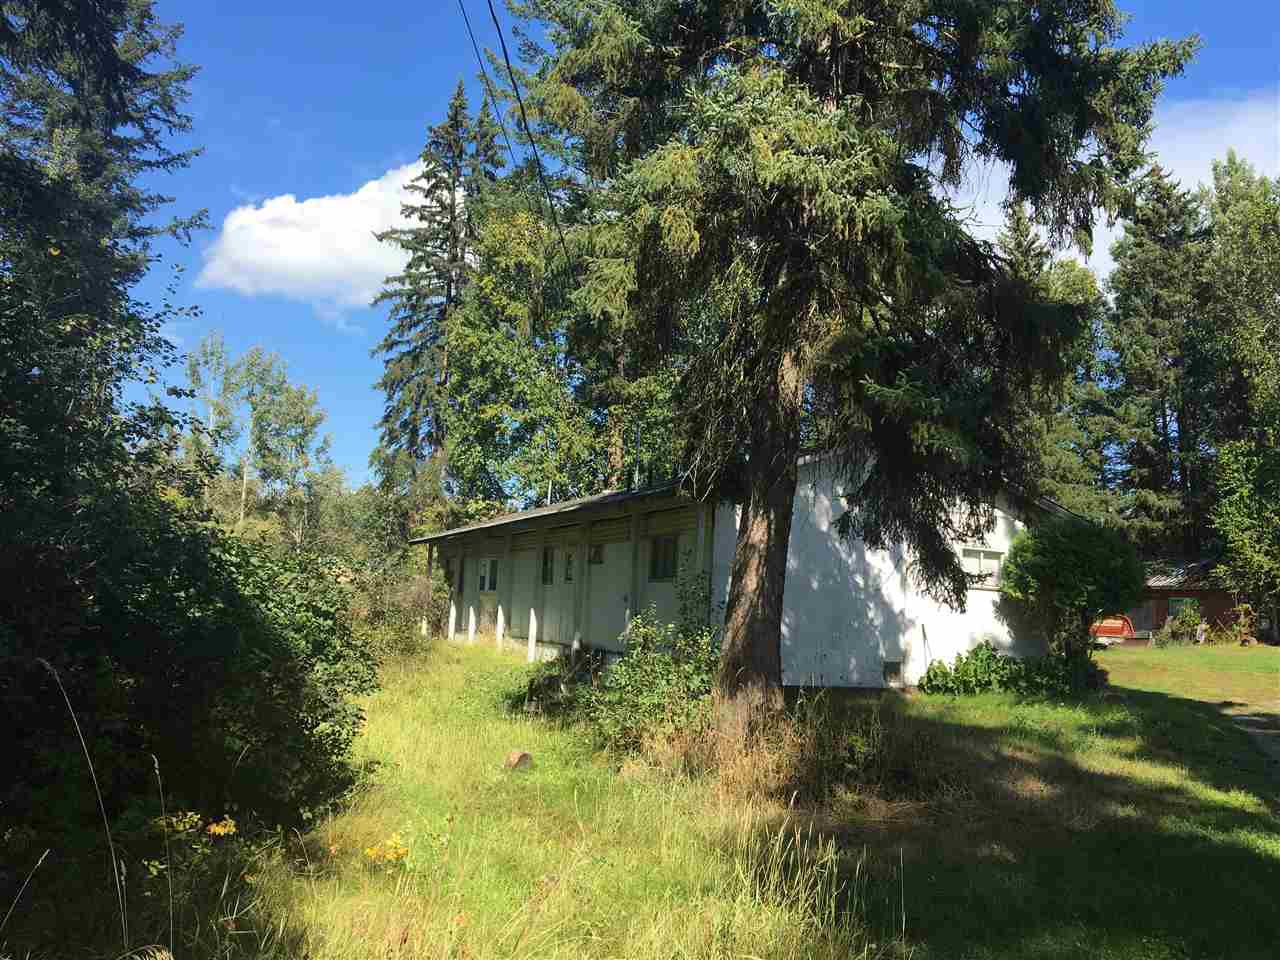 Photo 7: Photos: 4257 WHITECOTTON Road in Quesnel: Quesnel Rural - South Manufactured Home for sale (Quesnel (Zone 28))  : MLS®# R2479677